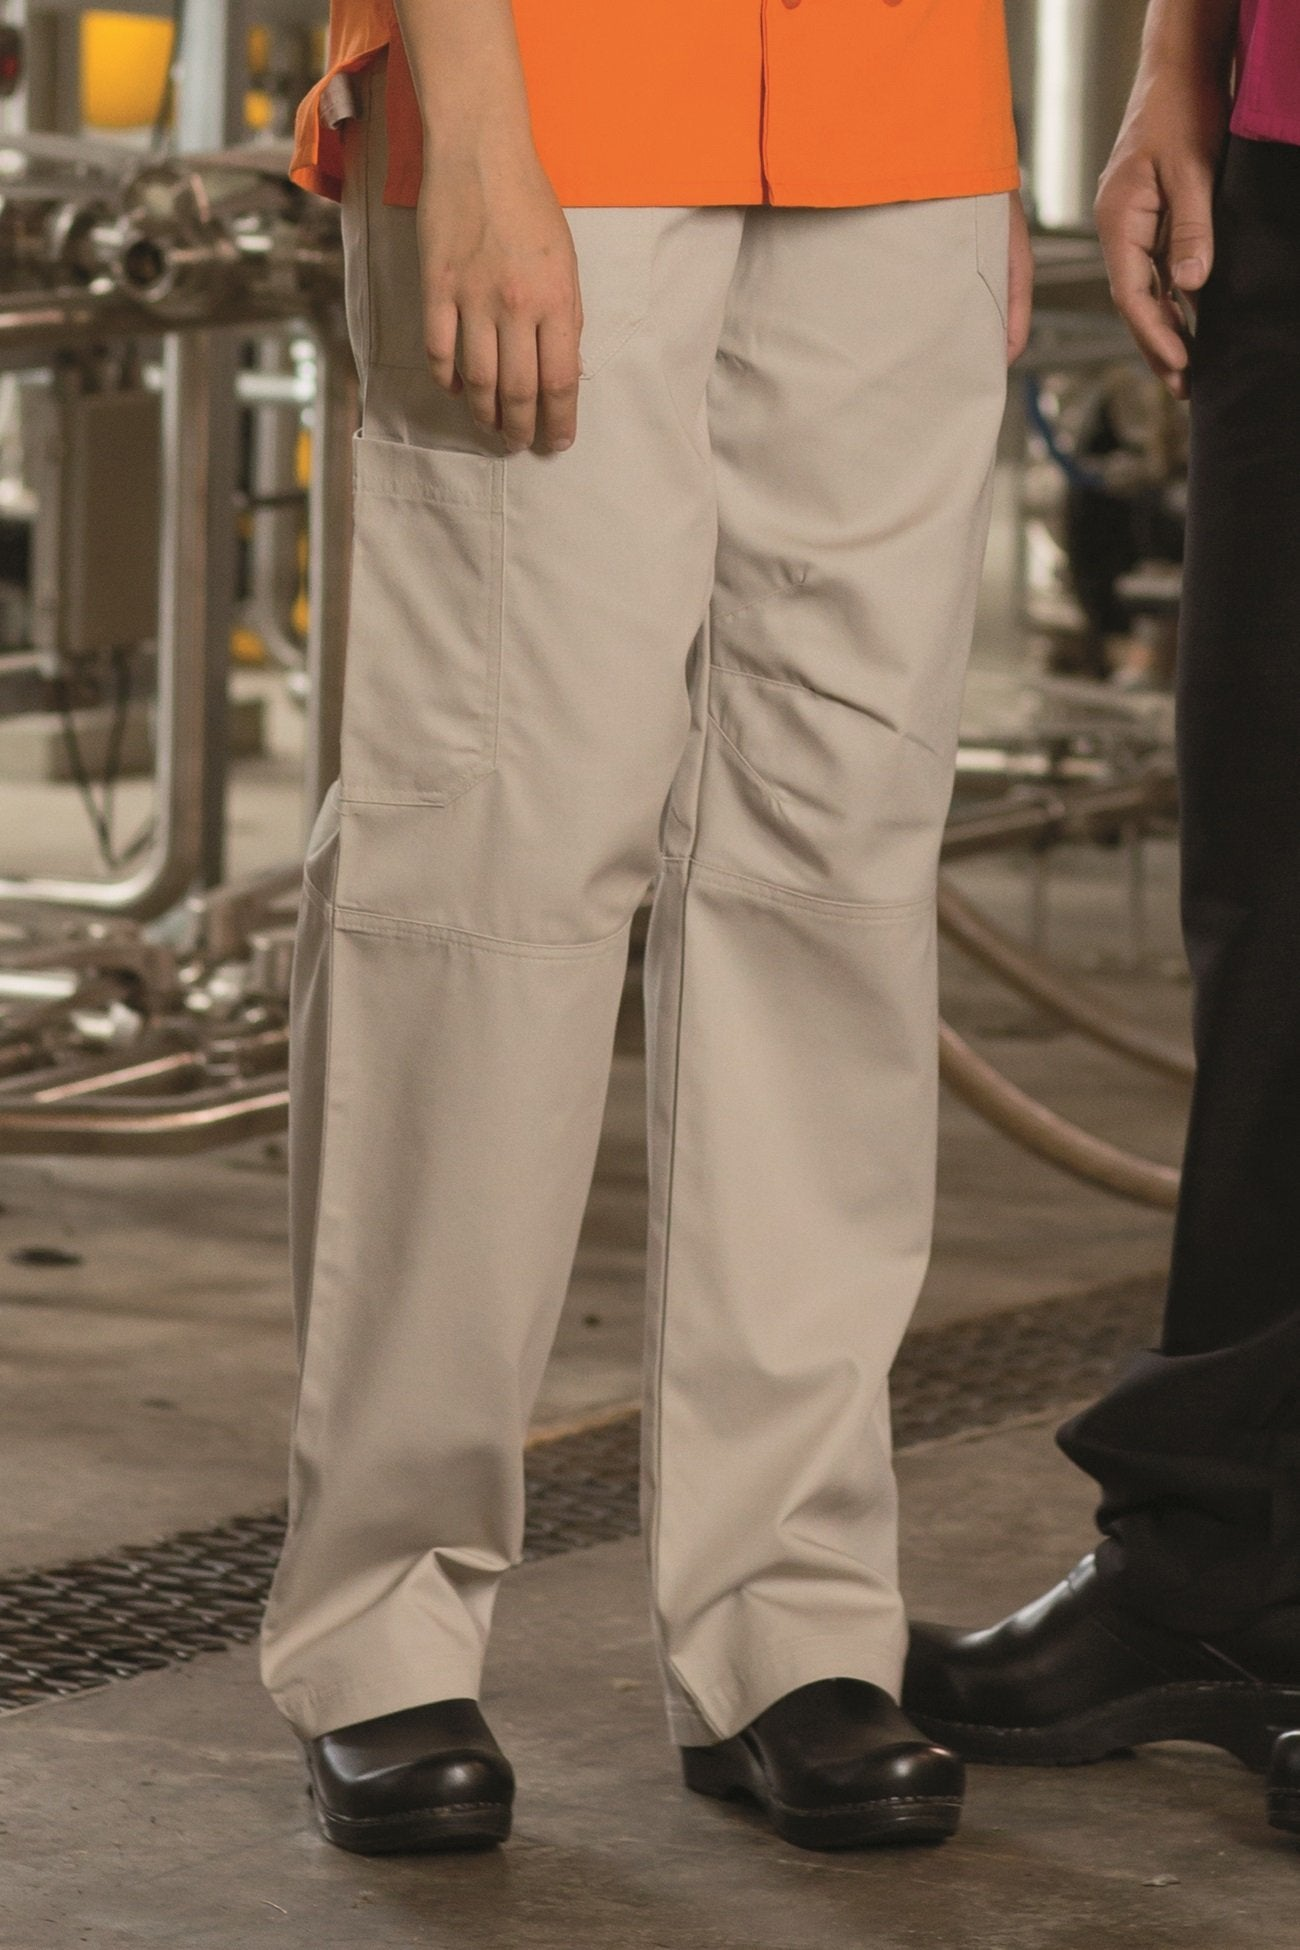 Grunge Cargo Chef Pant - Caterwear.com